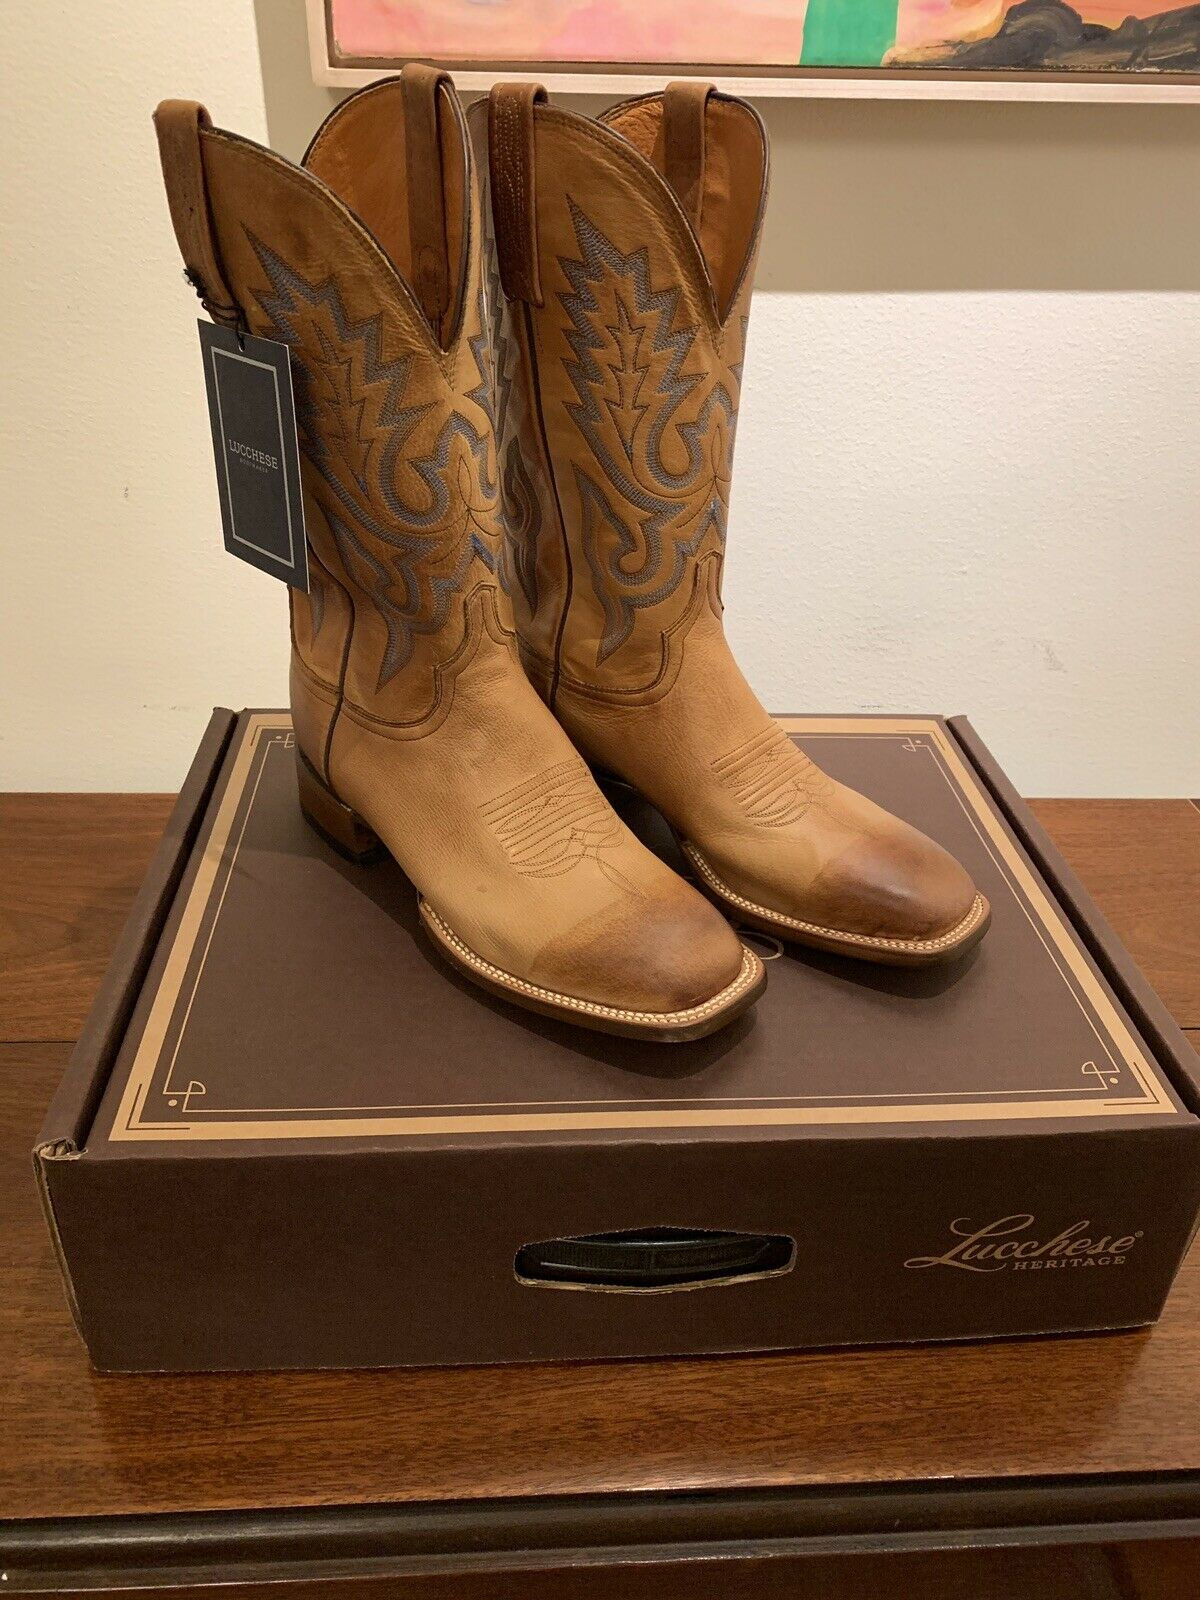 New   445 Lucchese Sz 8.5 KD6505 Limited Ed. Tan Cowboy stivali. Made In USA.